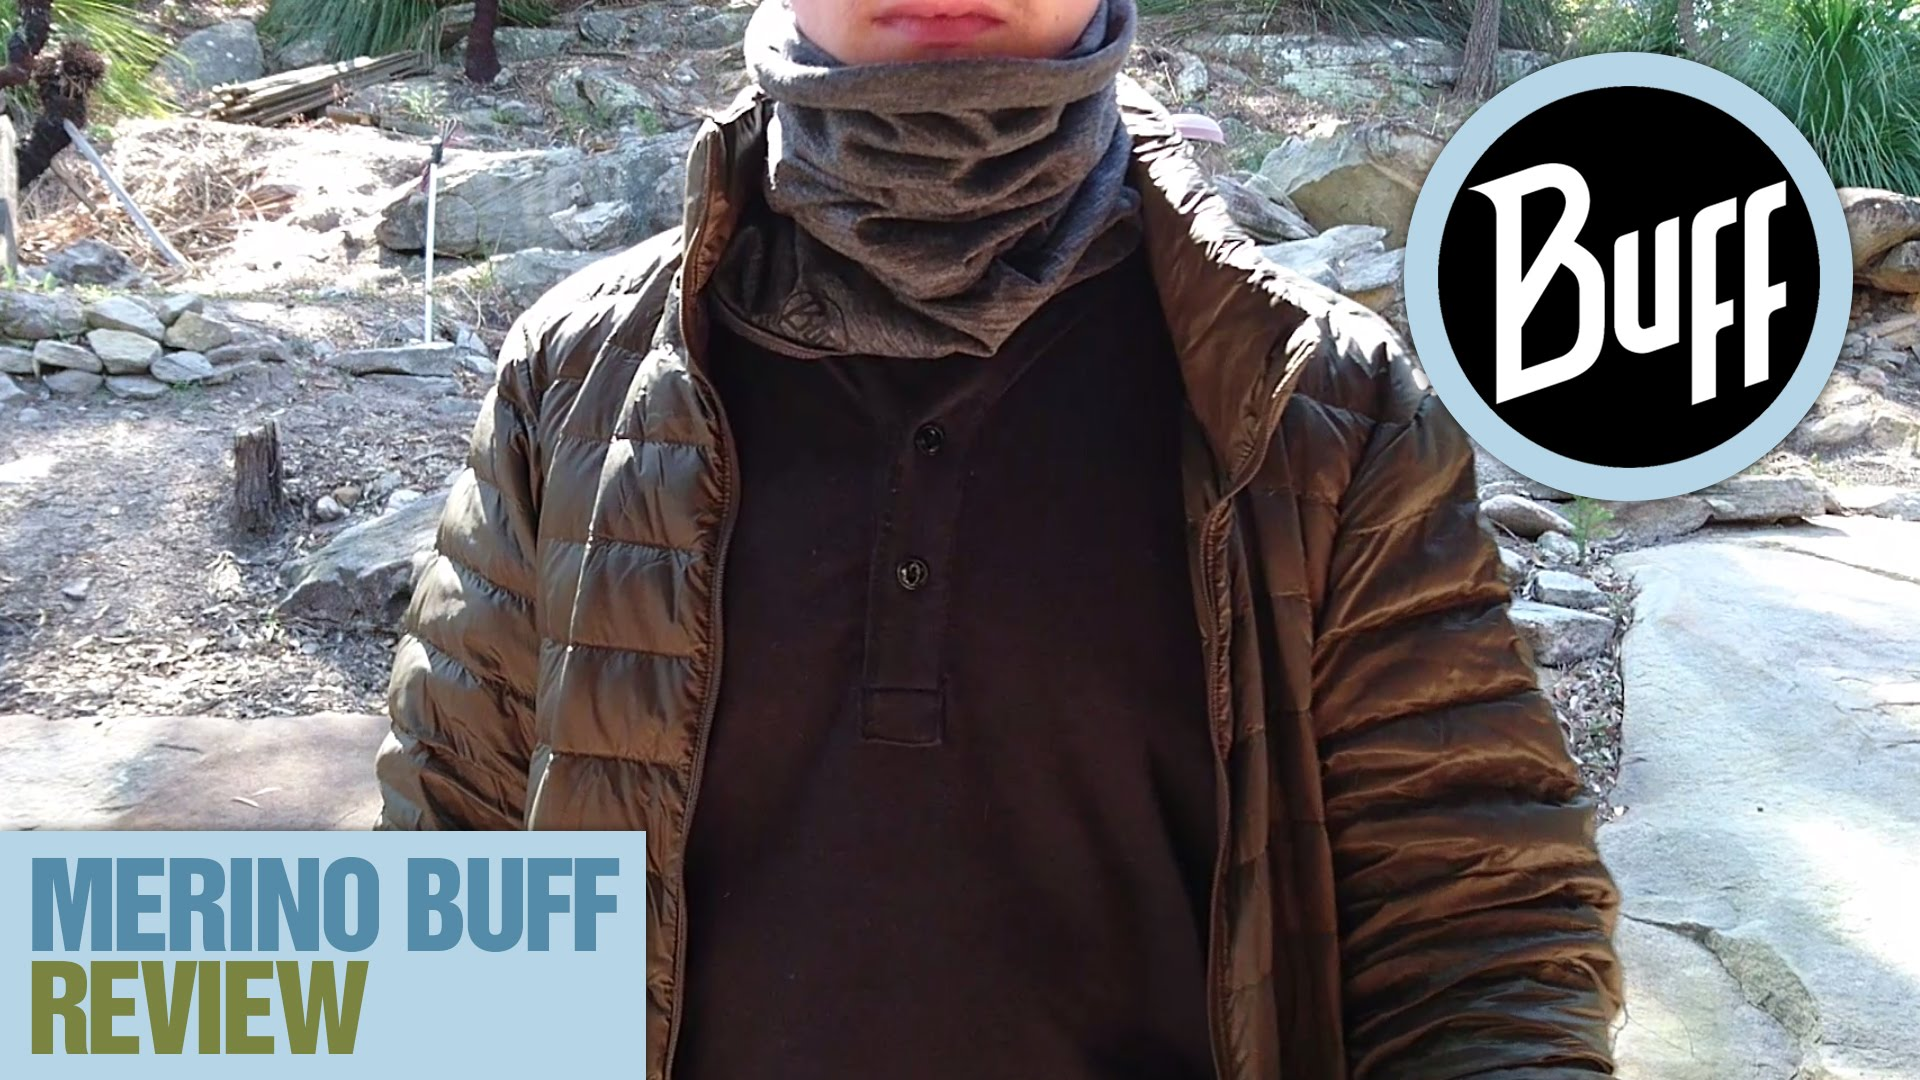 Buff-Merino-Wool-Review